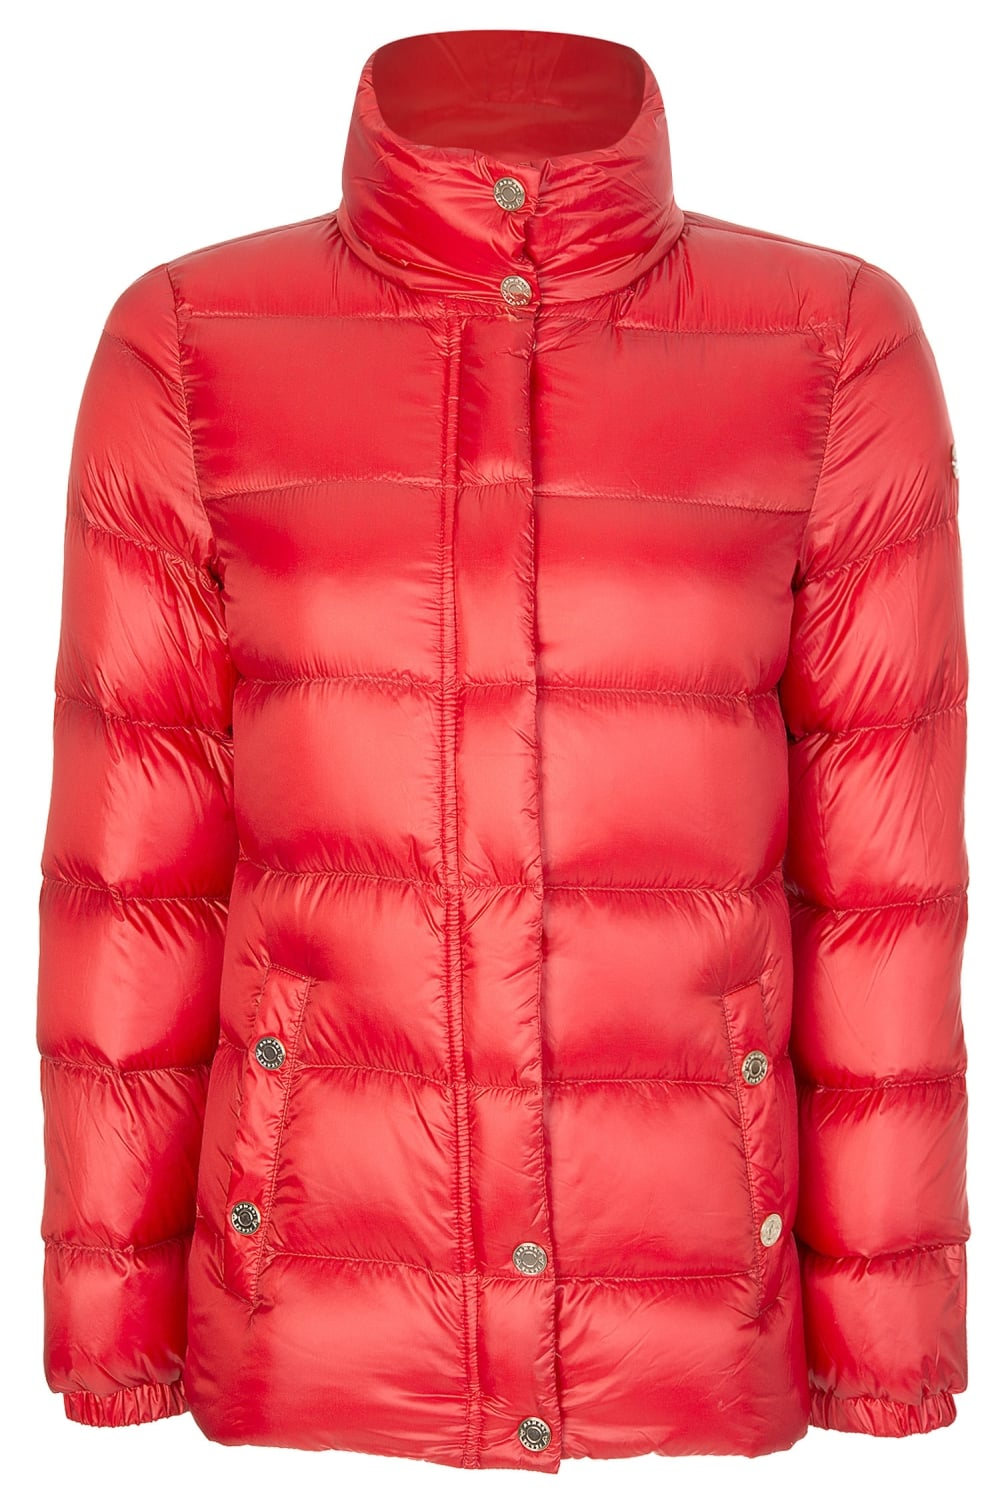 Armani Jeans Womens Red Puffer Jacket